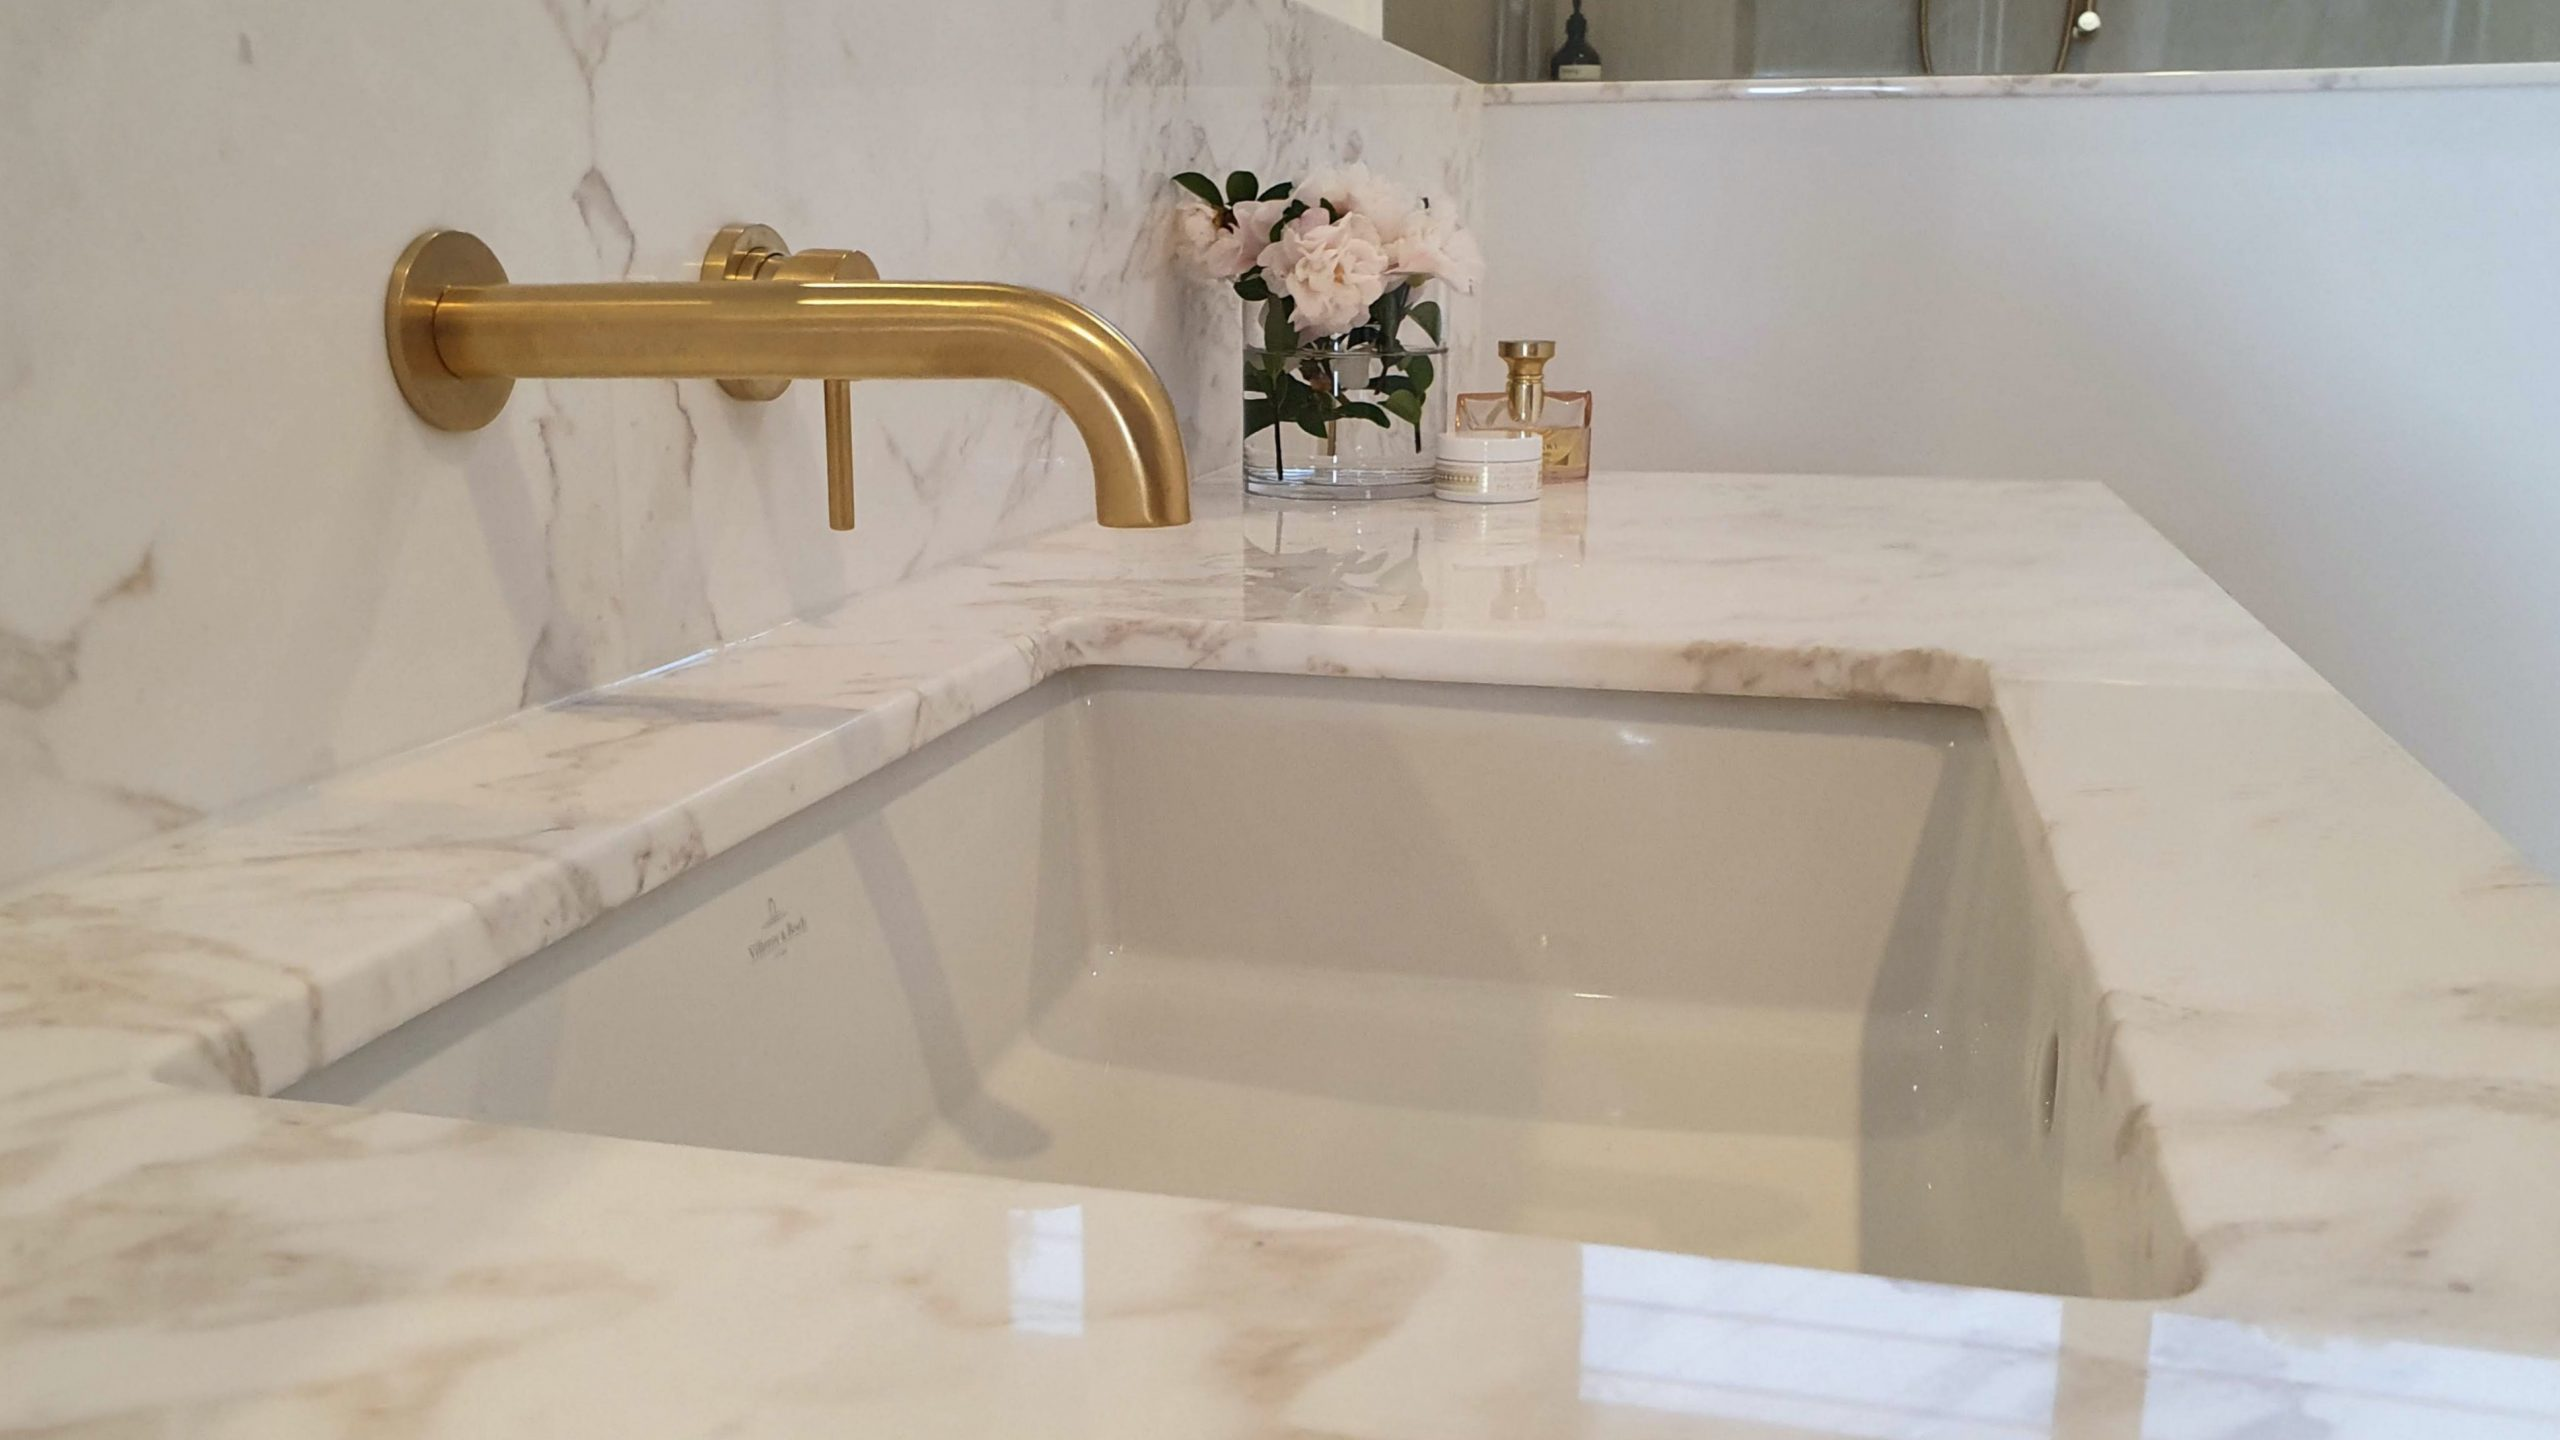 Contemporary brass tap and marble sink. Design Lennox Head